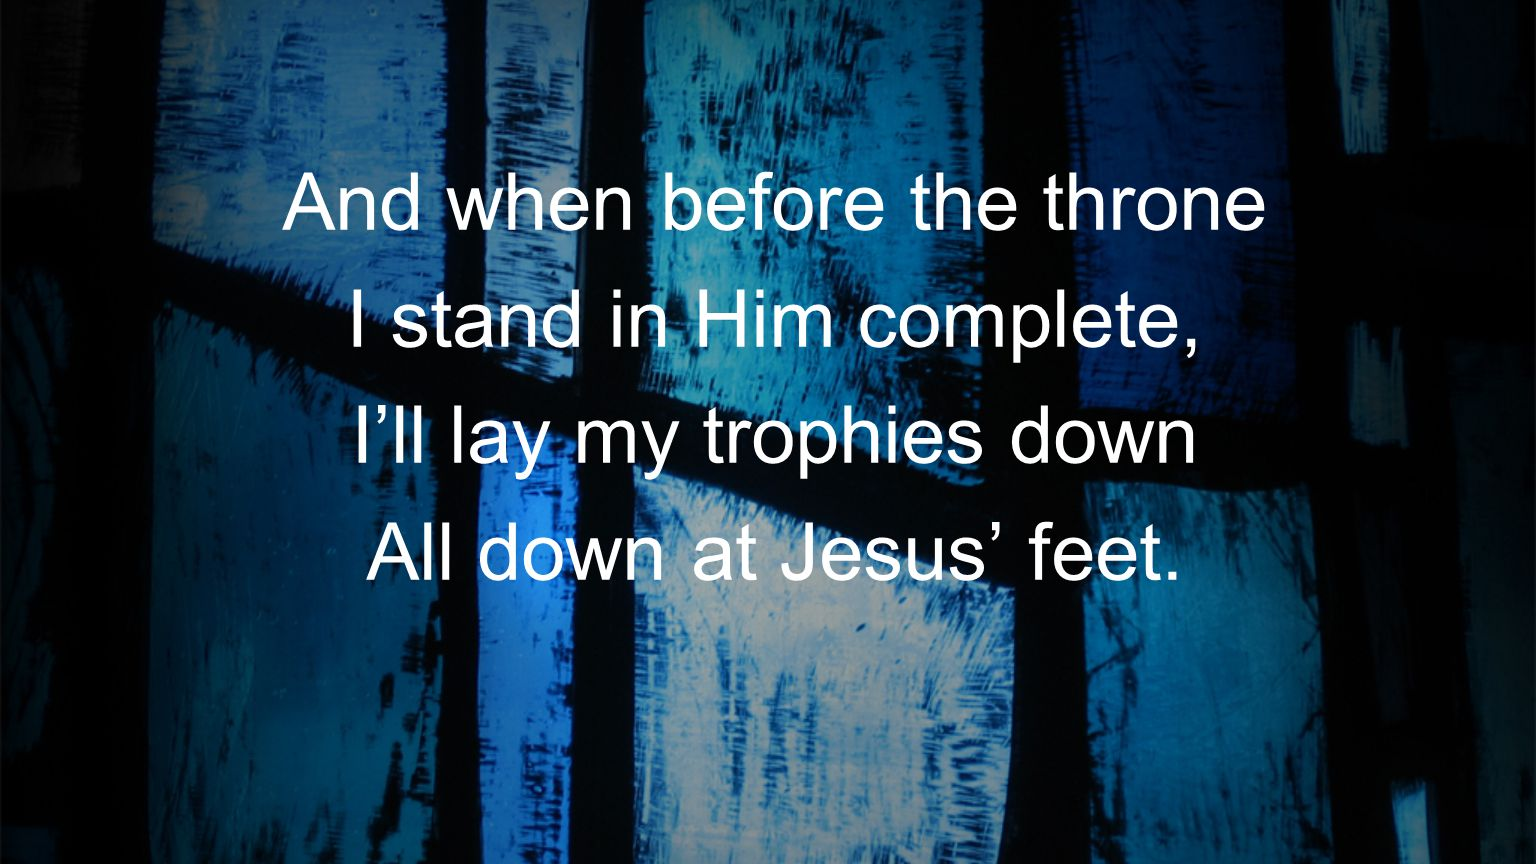 And when before the throne I stand in Him complete,